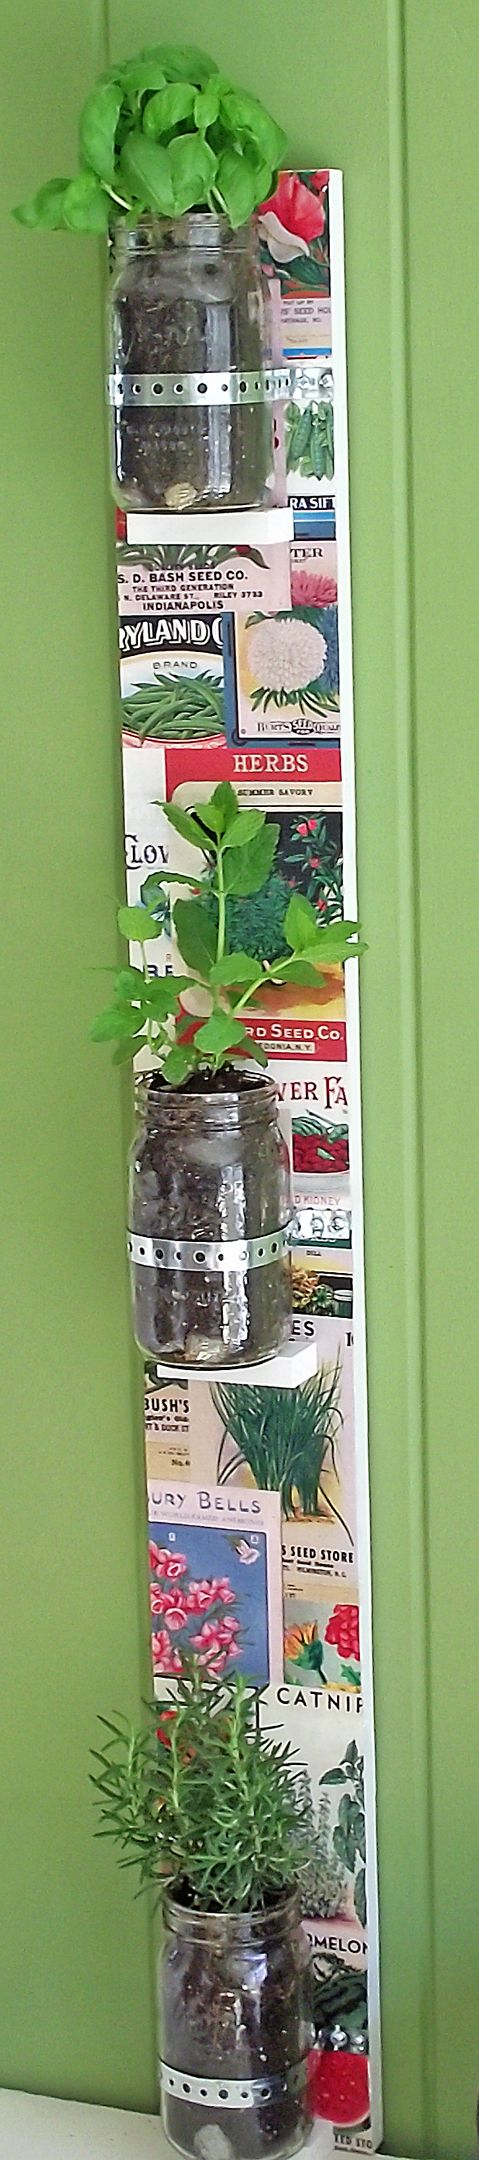 DIY Hanging Herb Garden with Mason Jars - Mod Podge Rocks